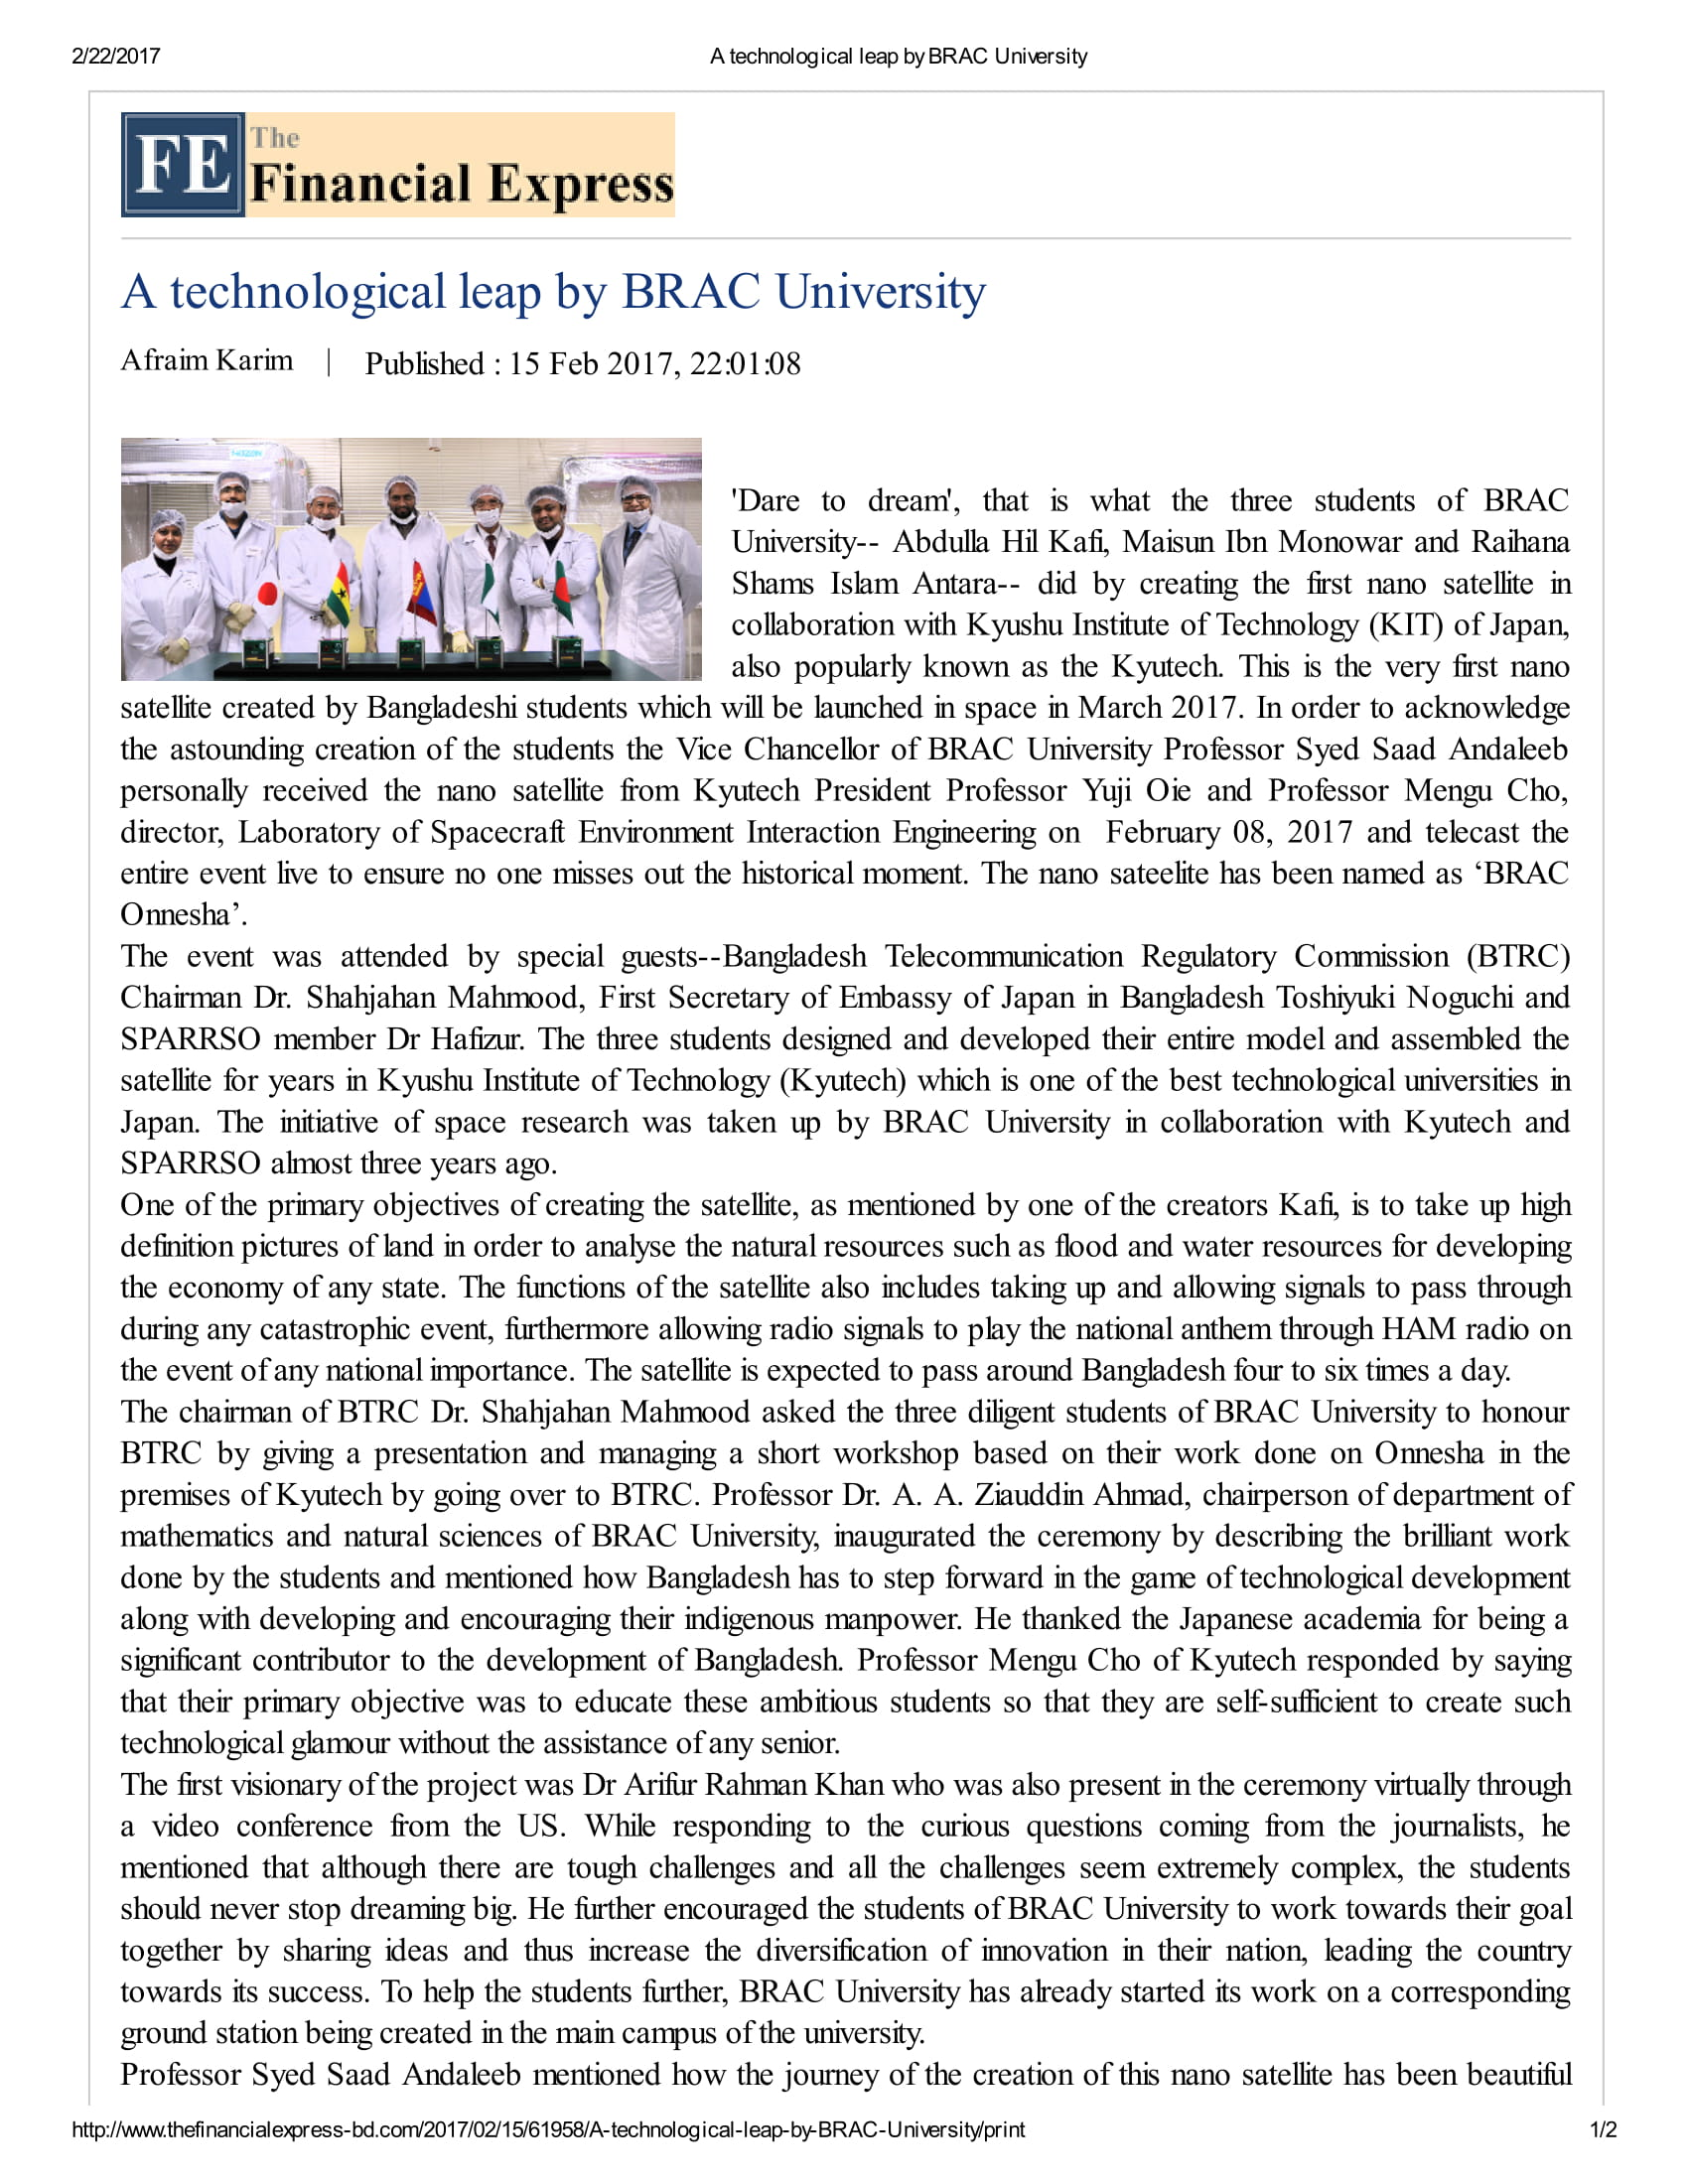 A technological leap by BRAC University-